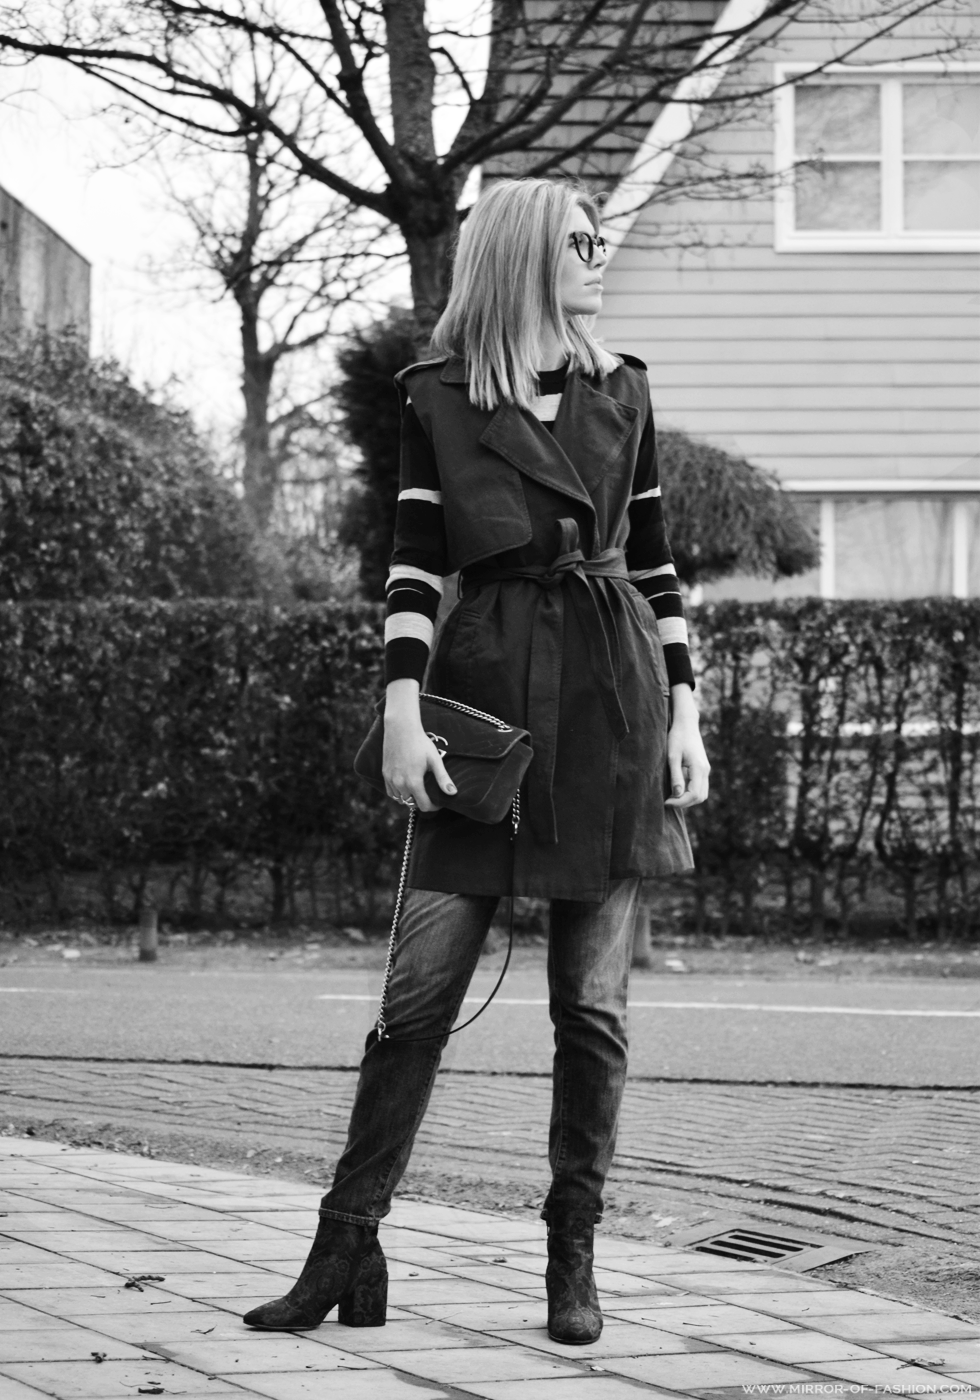 Outfit of the day, carven, Gucci, Jbrand, Aldo, Fendi, Dewolf, Naiomy, Earnest Sewn, outfit, ootd, look, fashion, blogger, gilet,